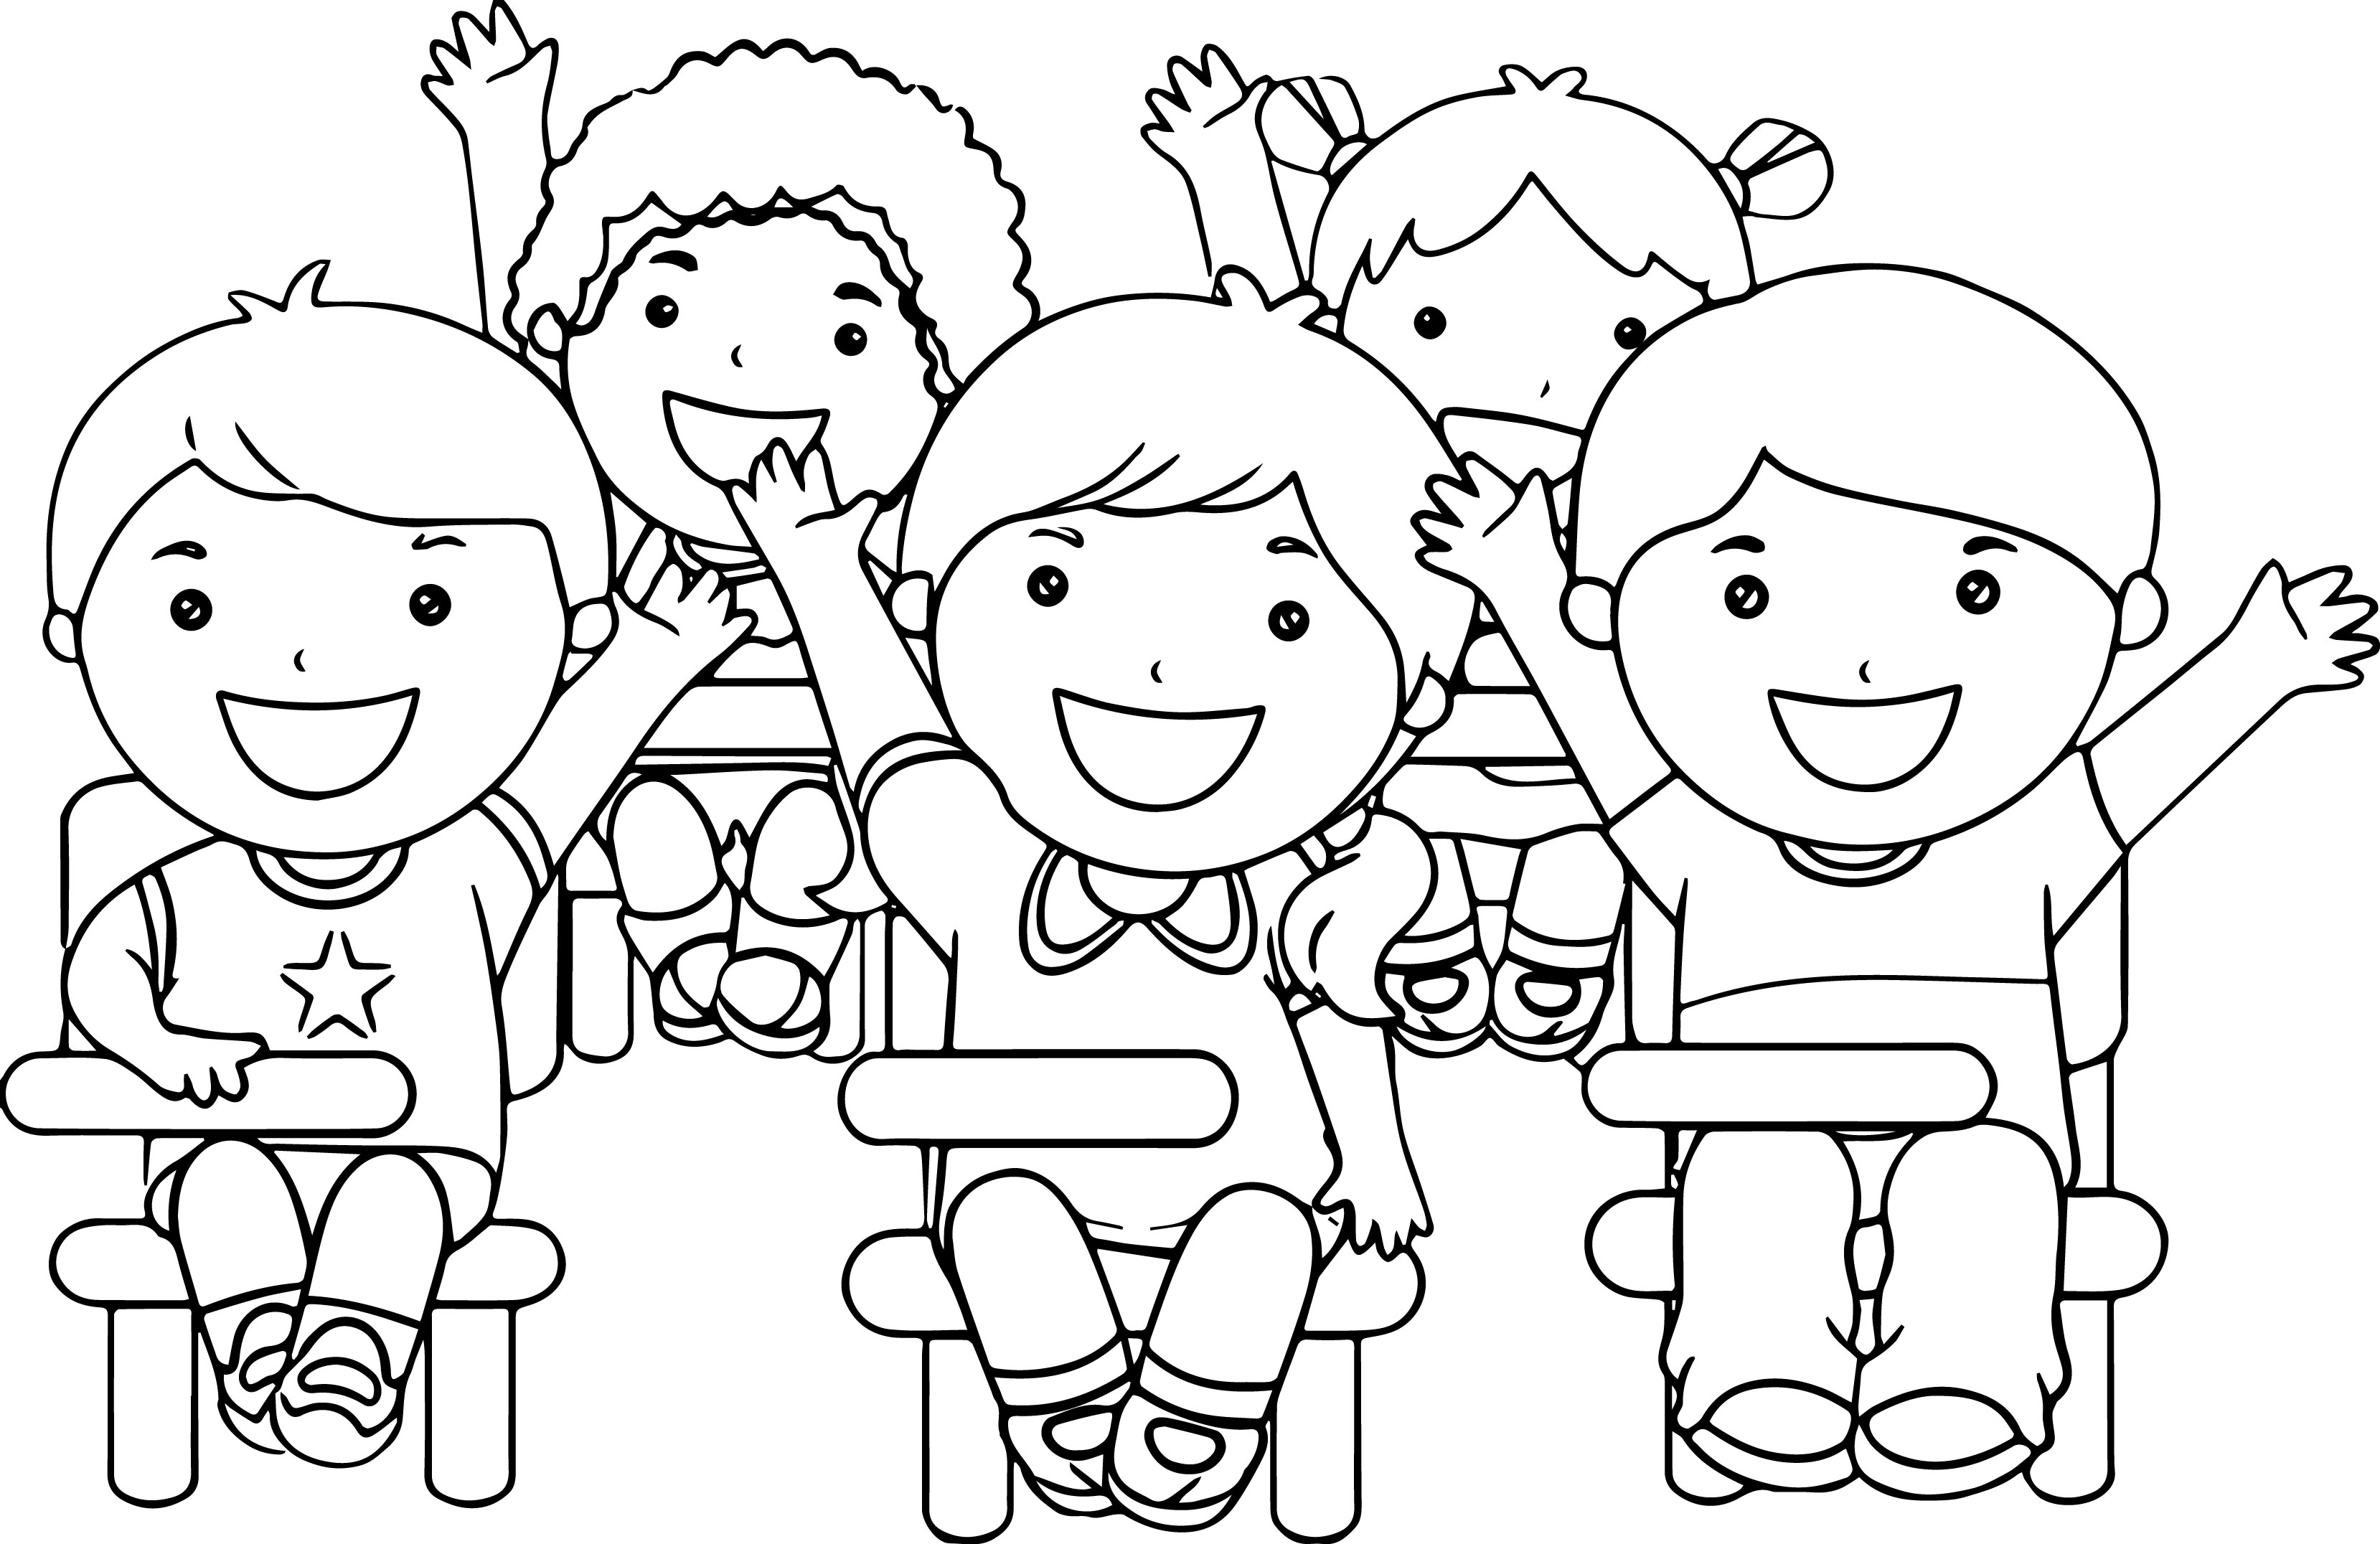 3317x2152 Printable Happy Kids Earth Day Coloring Page For Kids Coloring